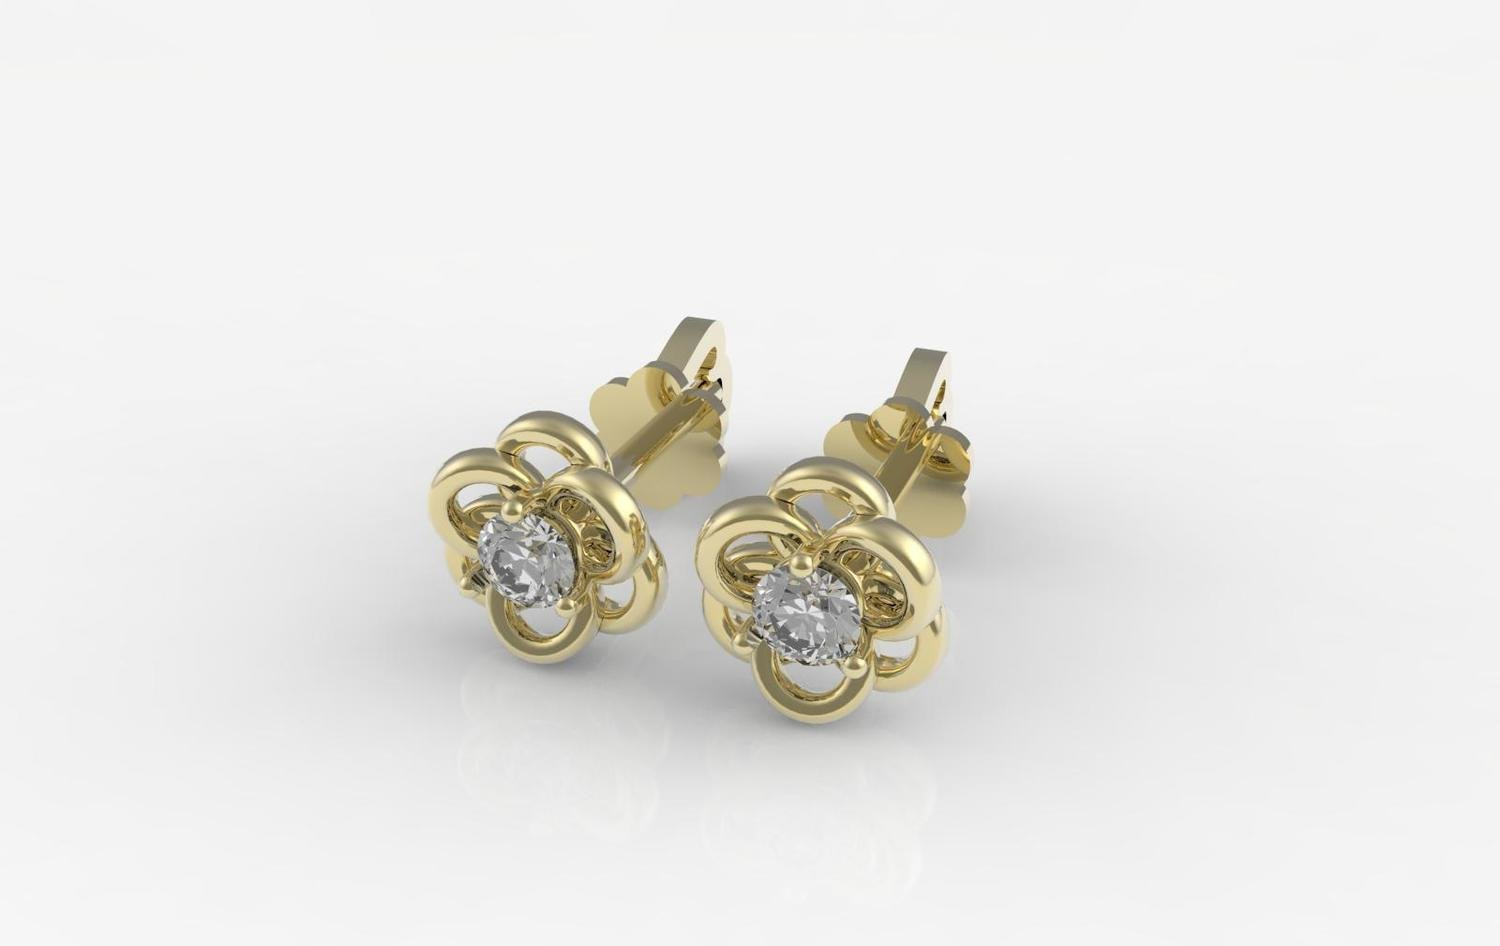 3D CAD model of diamond stud earrings with push back